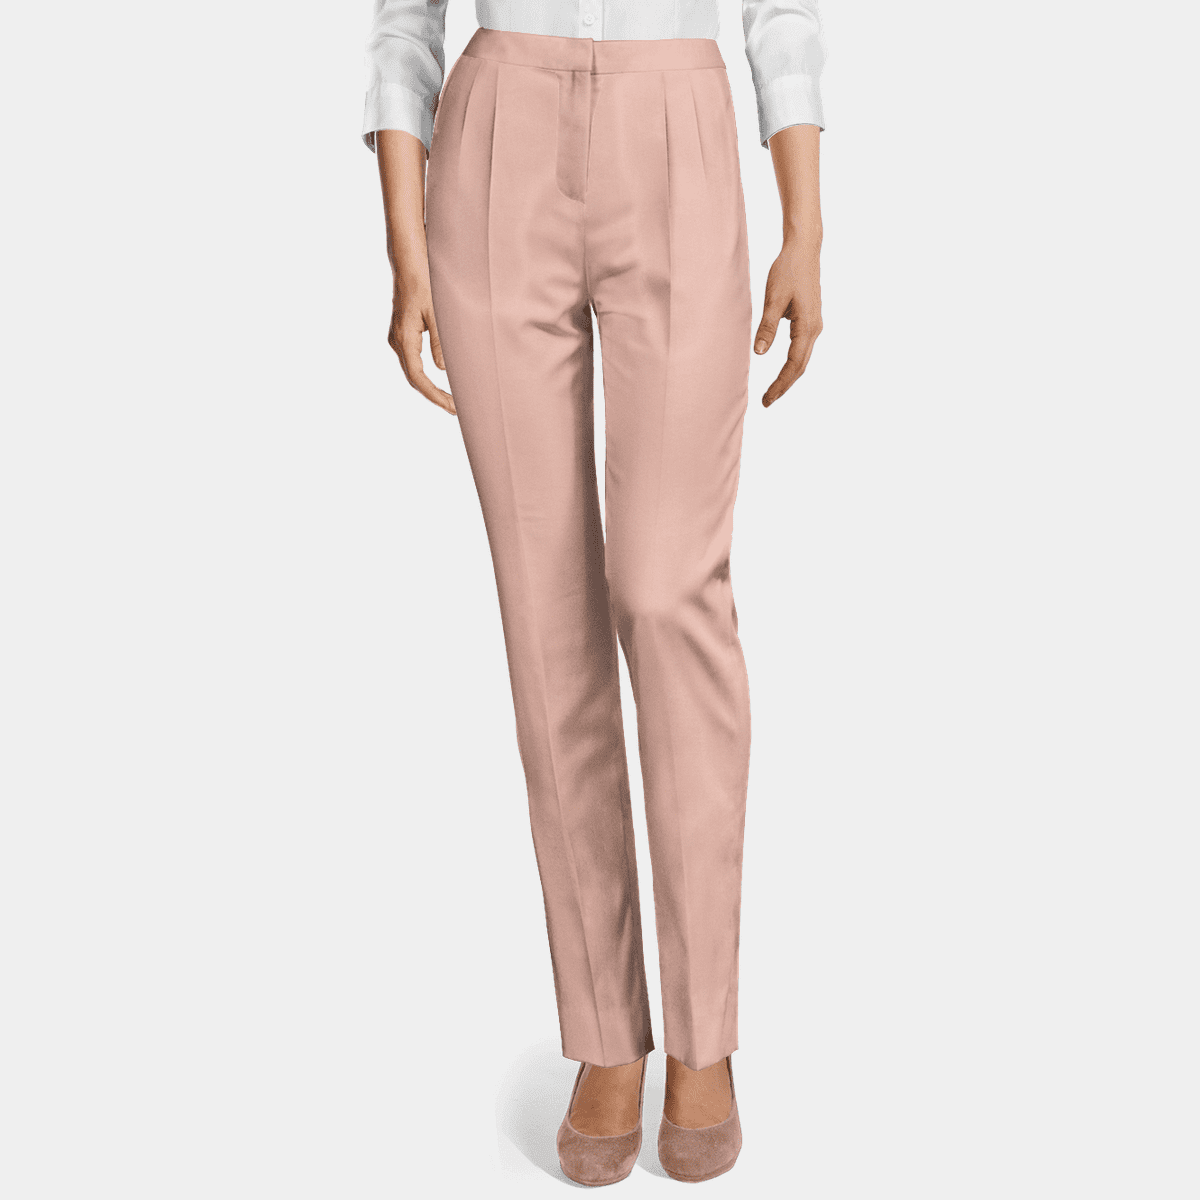 Pink stretch high waisted pleated Women Dress Pants